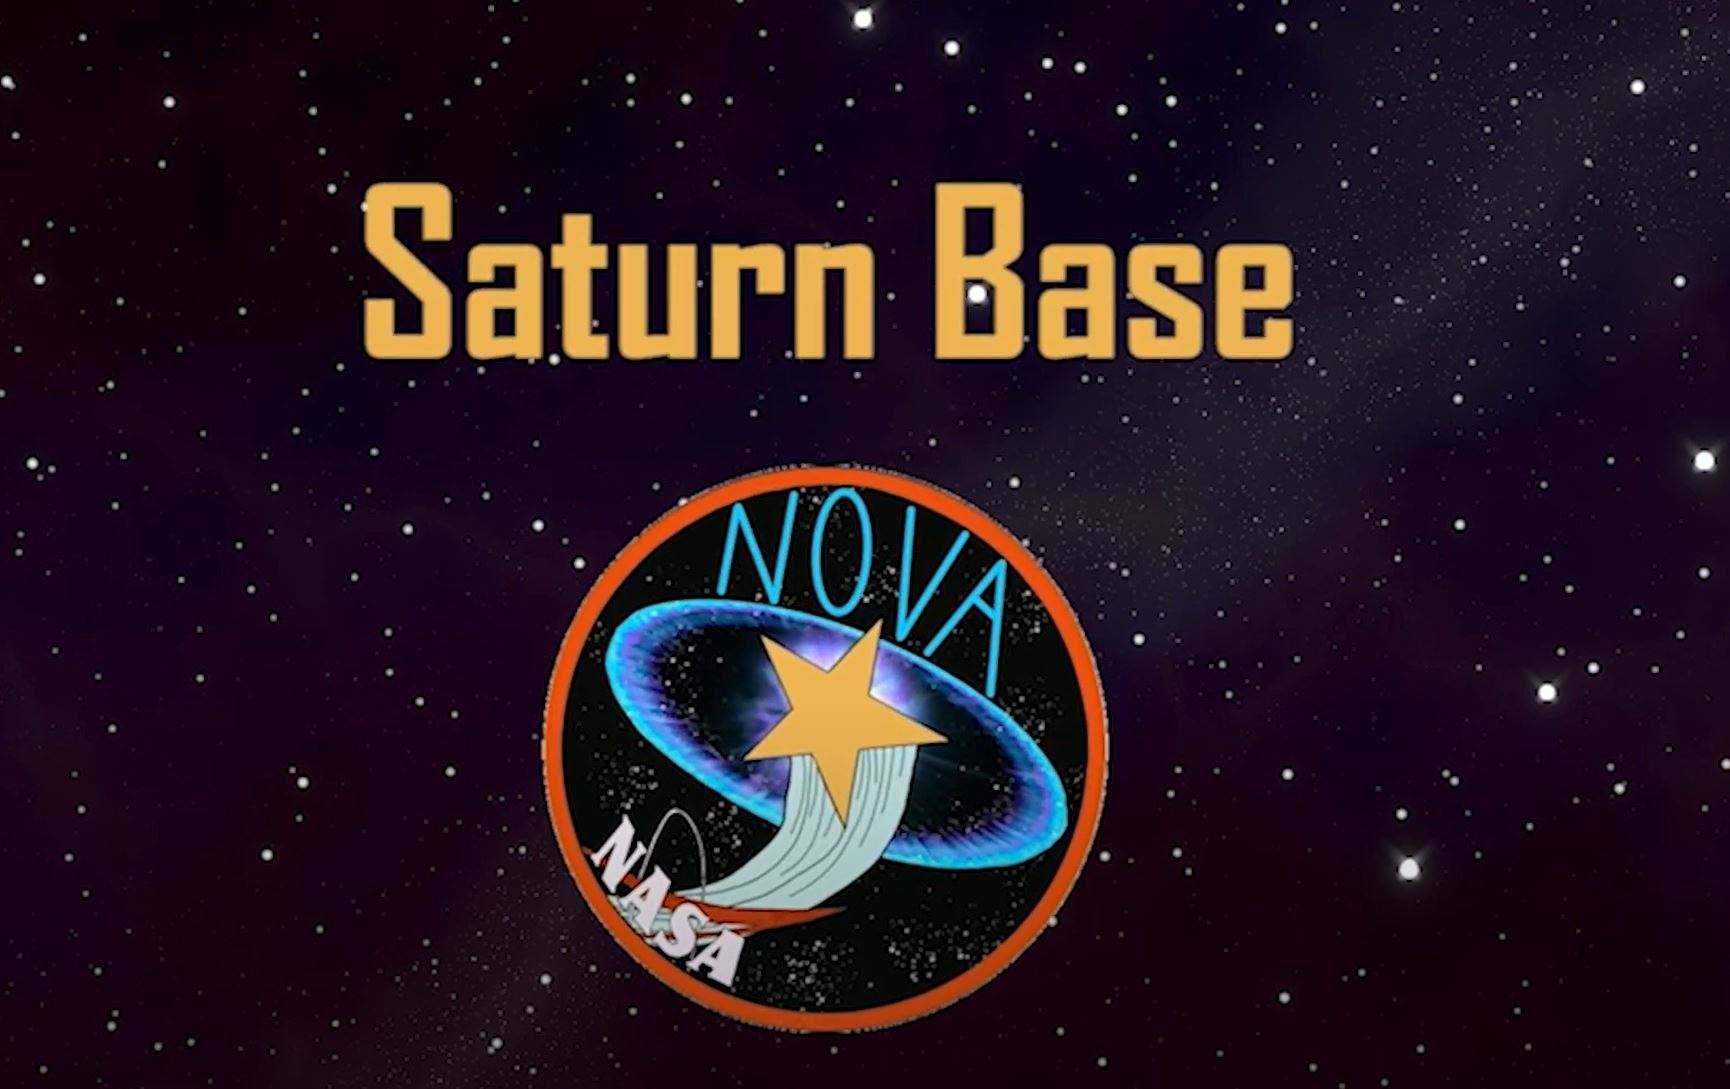 Theatre Thursdays: Saturn Base Nova